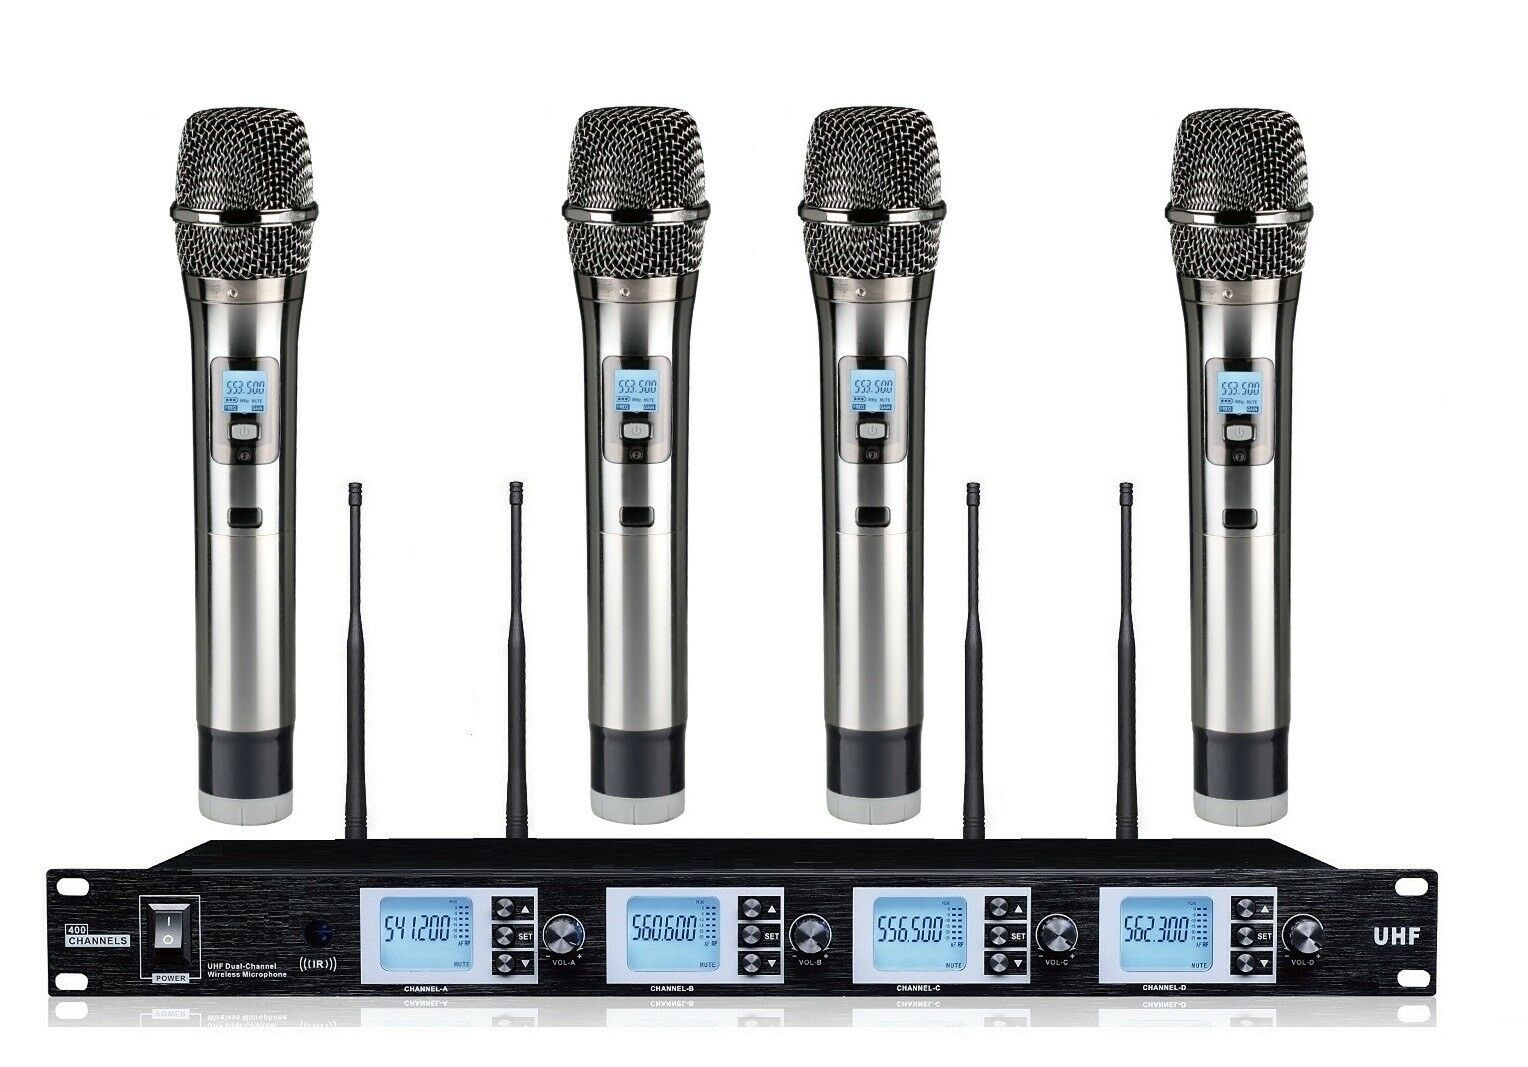 Quad Channel Wireless Microphone System mit vier Handheld Dynamic Microphones